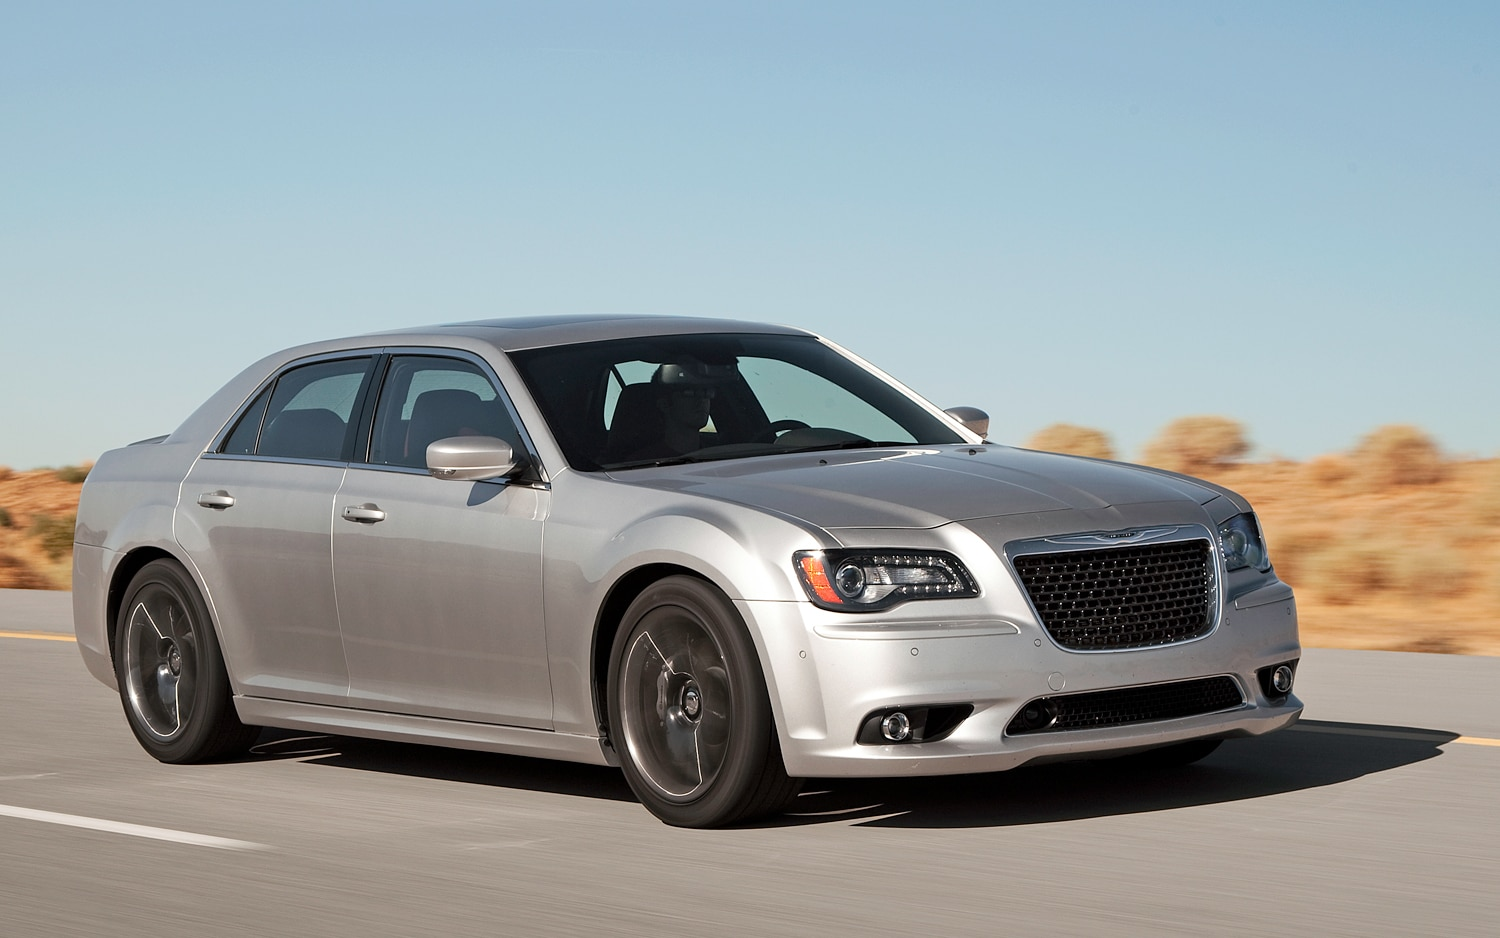 2012 Chrysler 300 Front View In Motion1